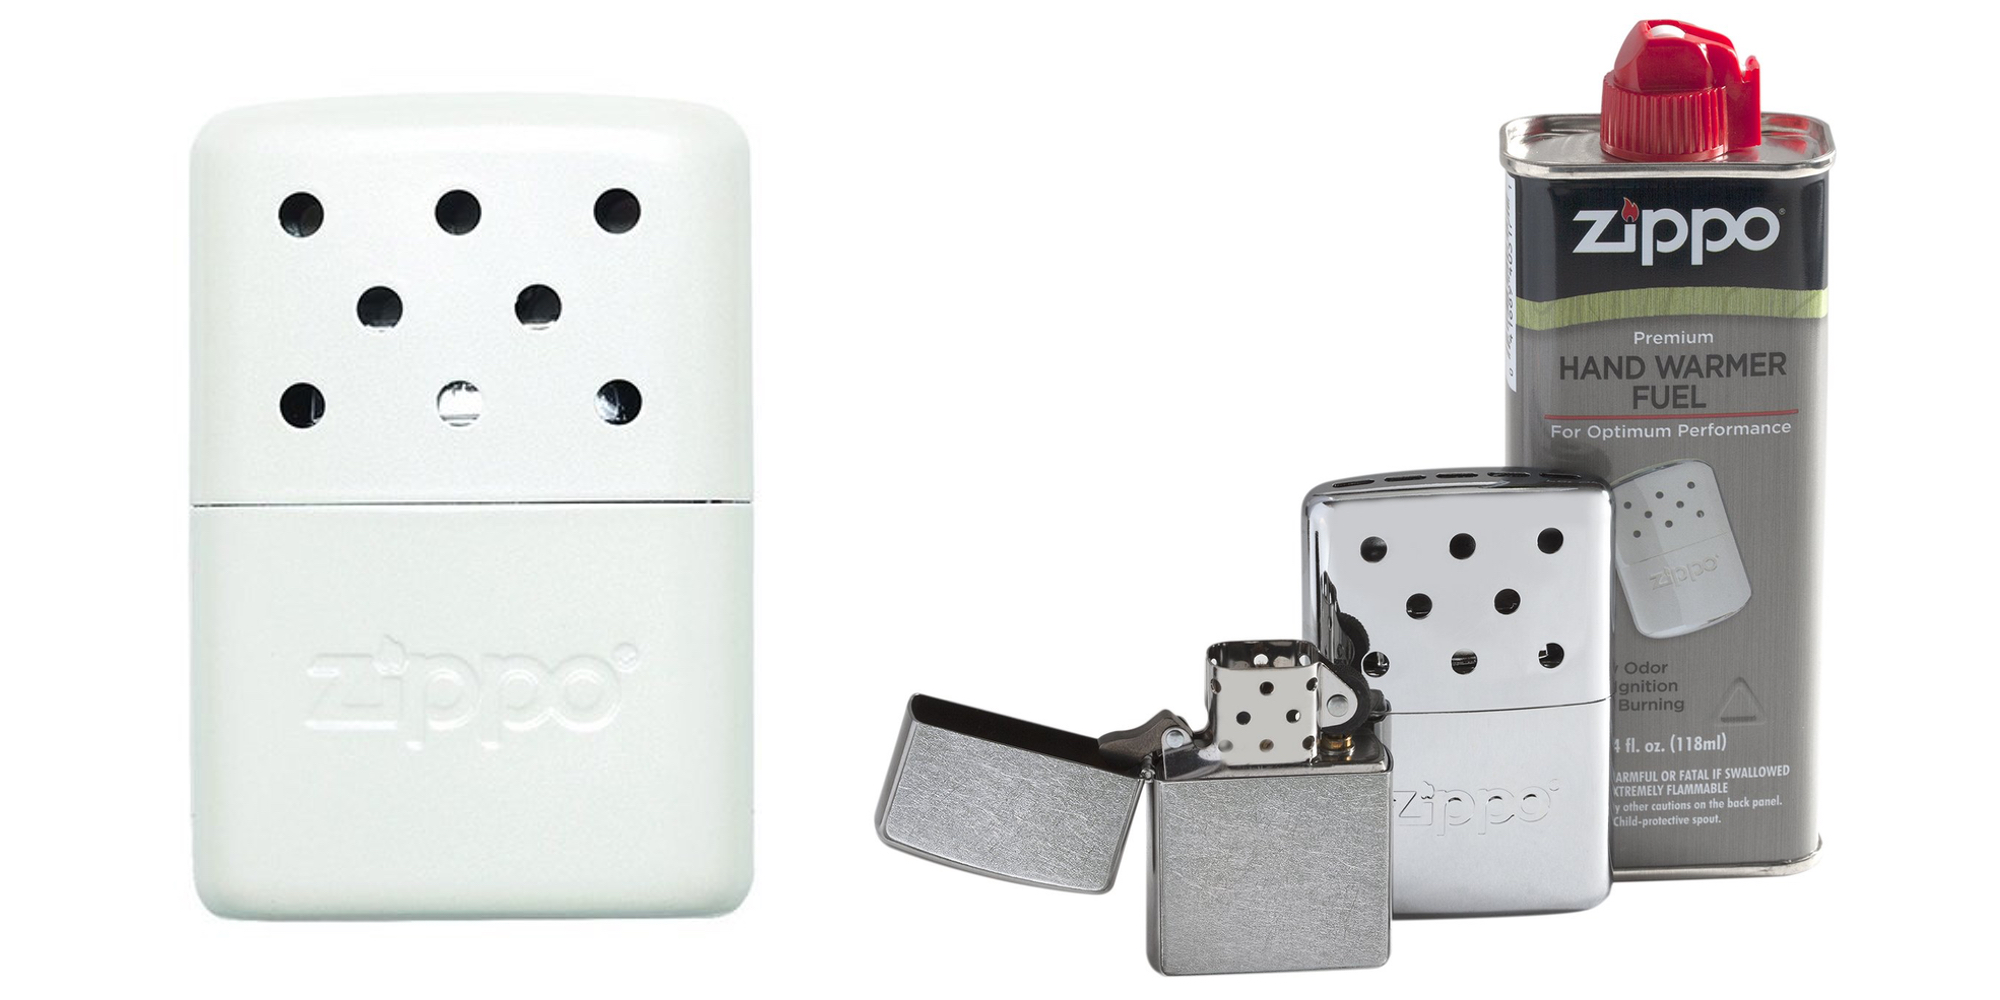 Keep your mitts nice and toasty with Zippo's refillable hand warmers from $8.50 (up to 23% off)